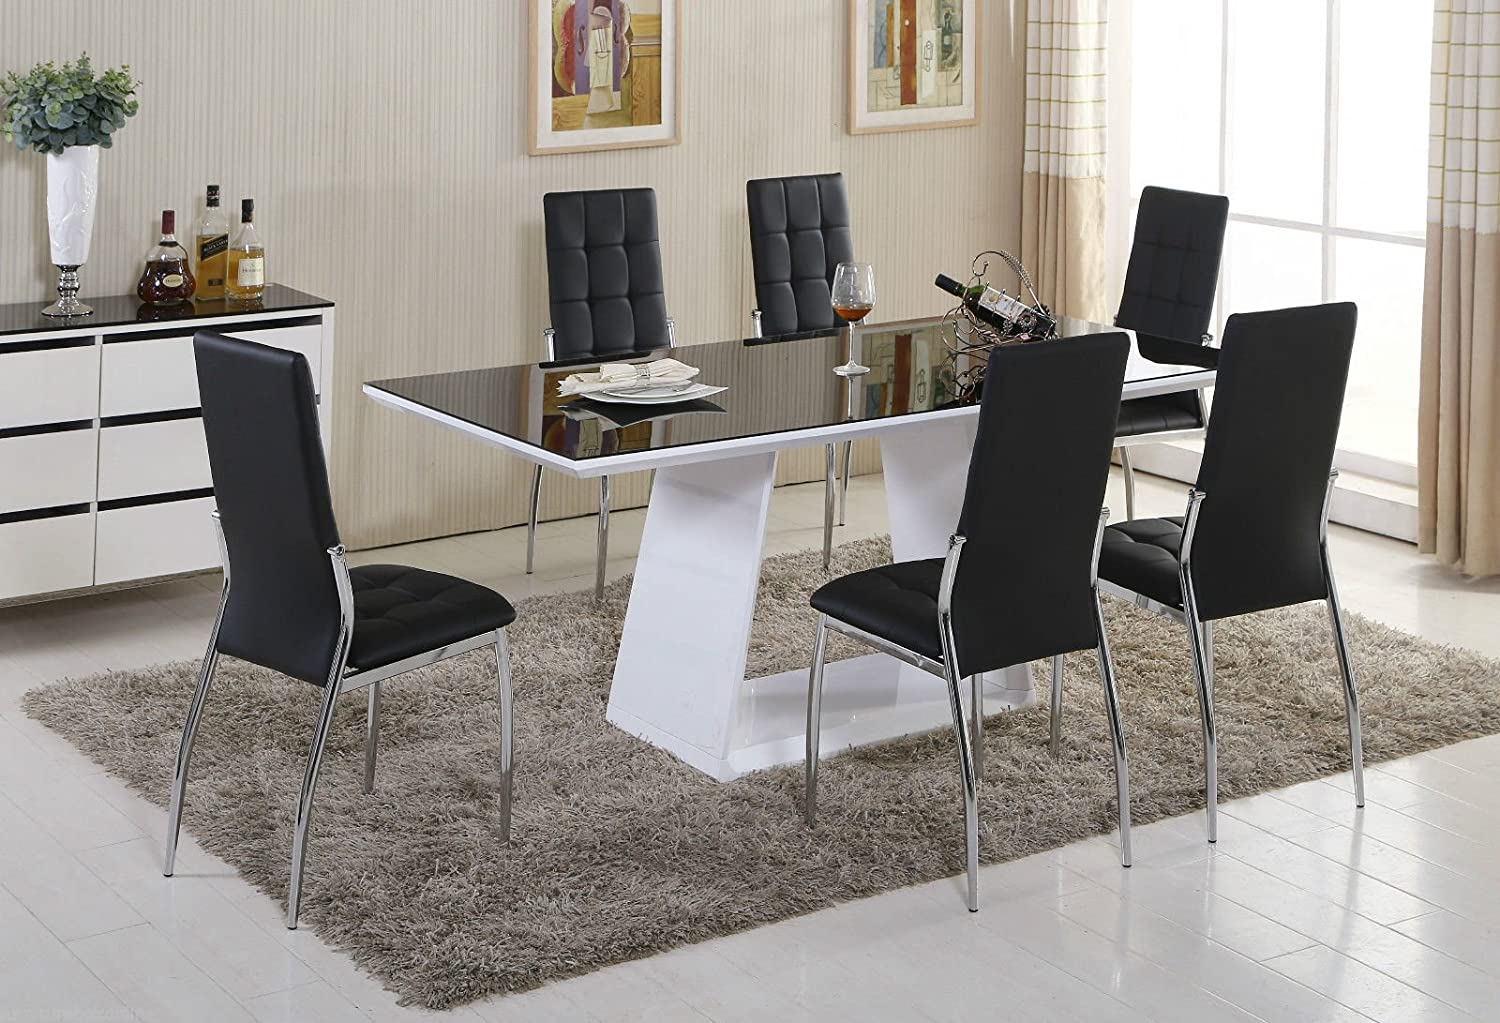 Italian Glass Dining Table Dining Table Italian Style Fantastic Home Design